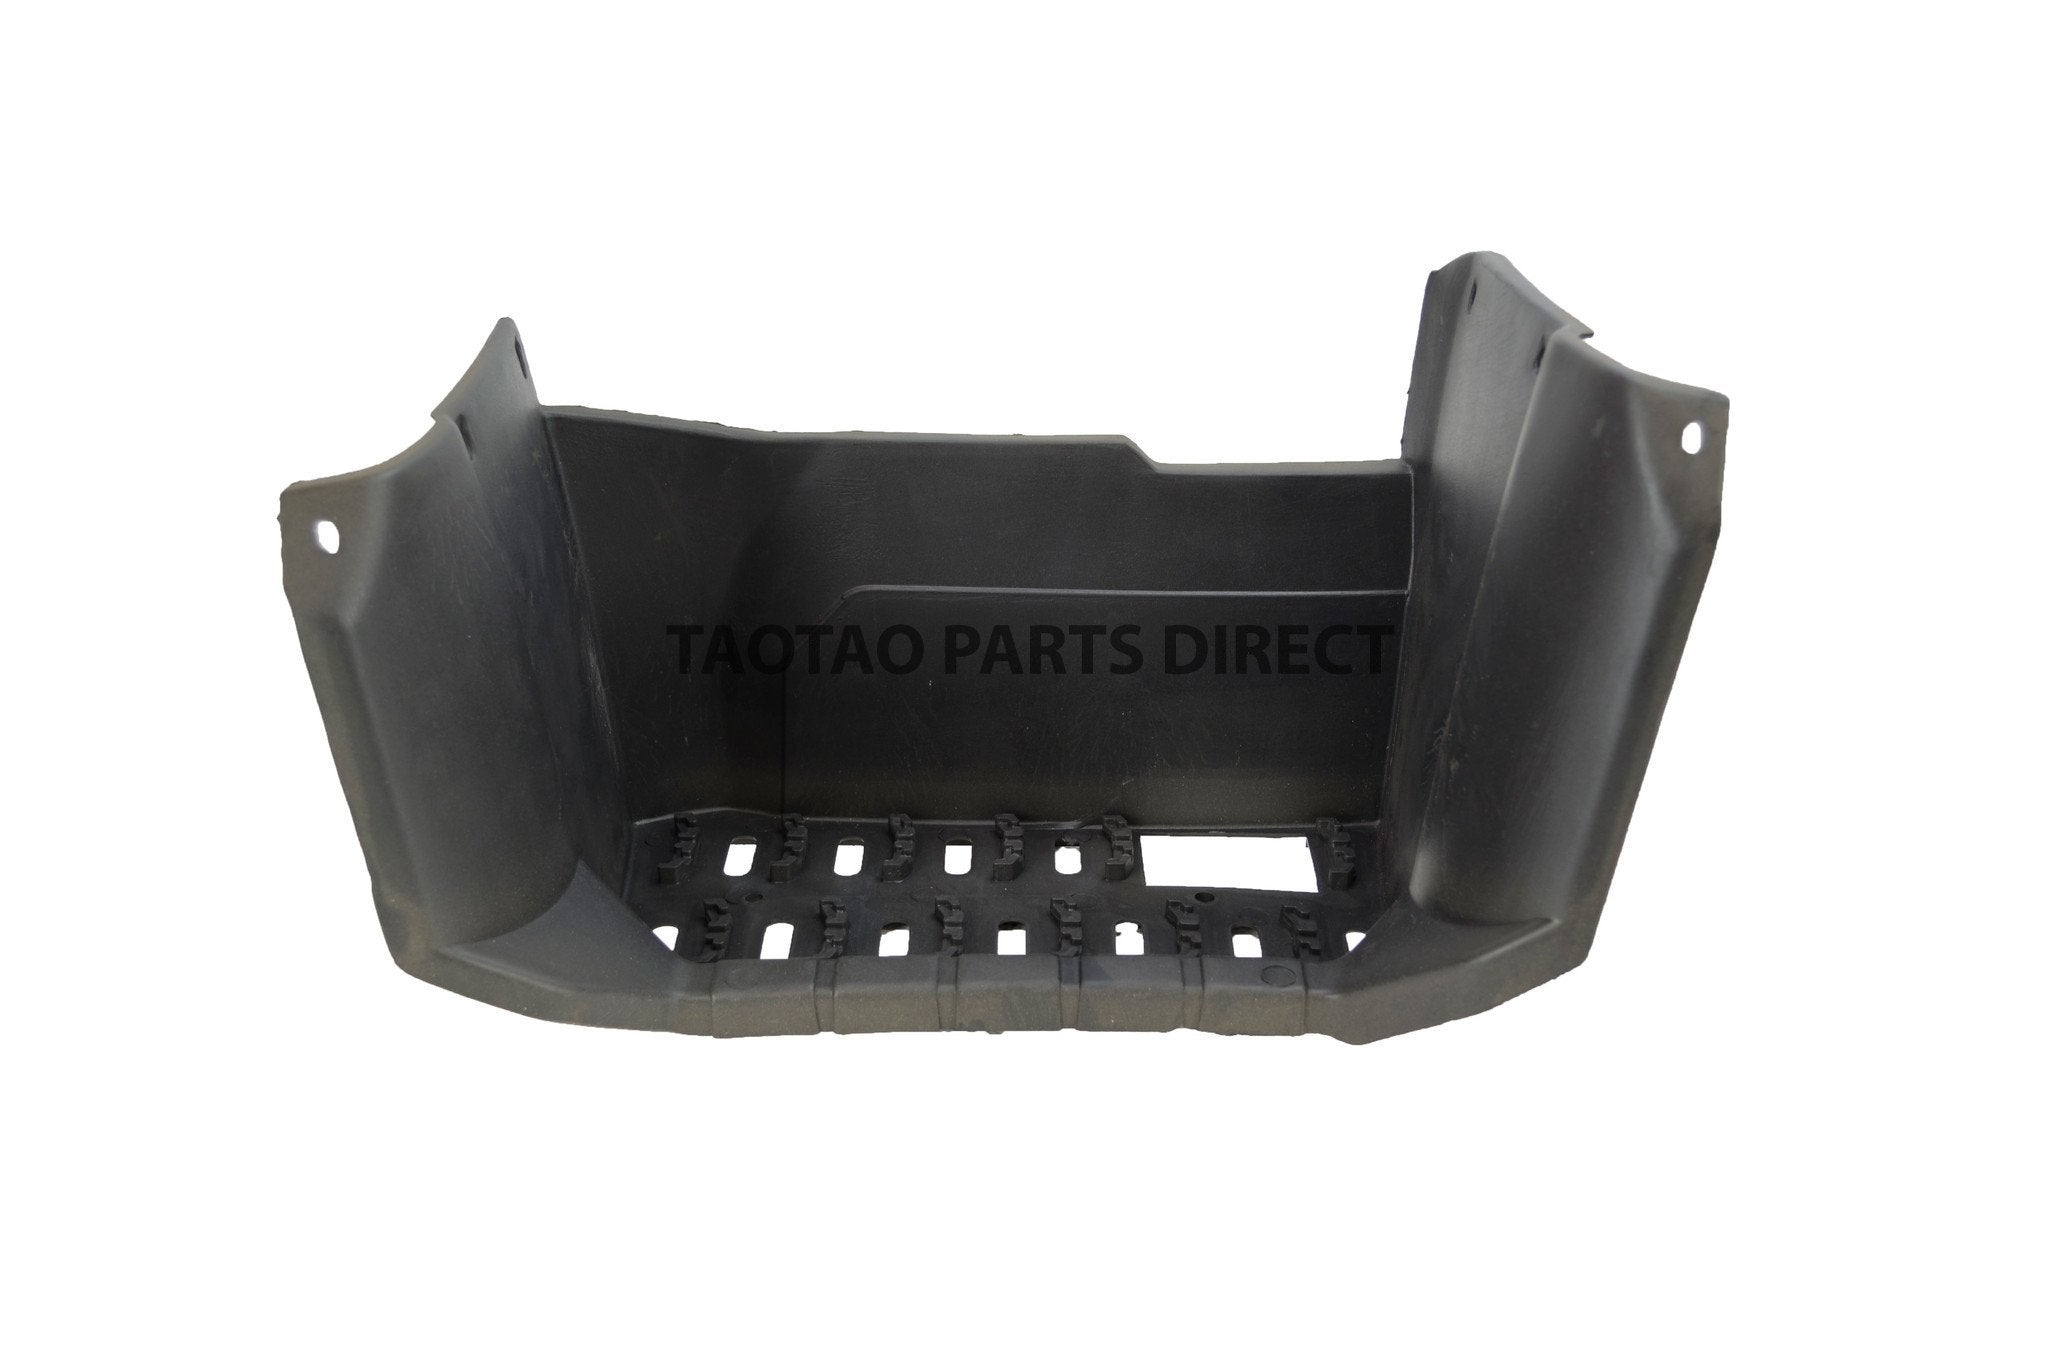 ATA125D Right Foot Rest - TaoTaoPartsDirect.com